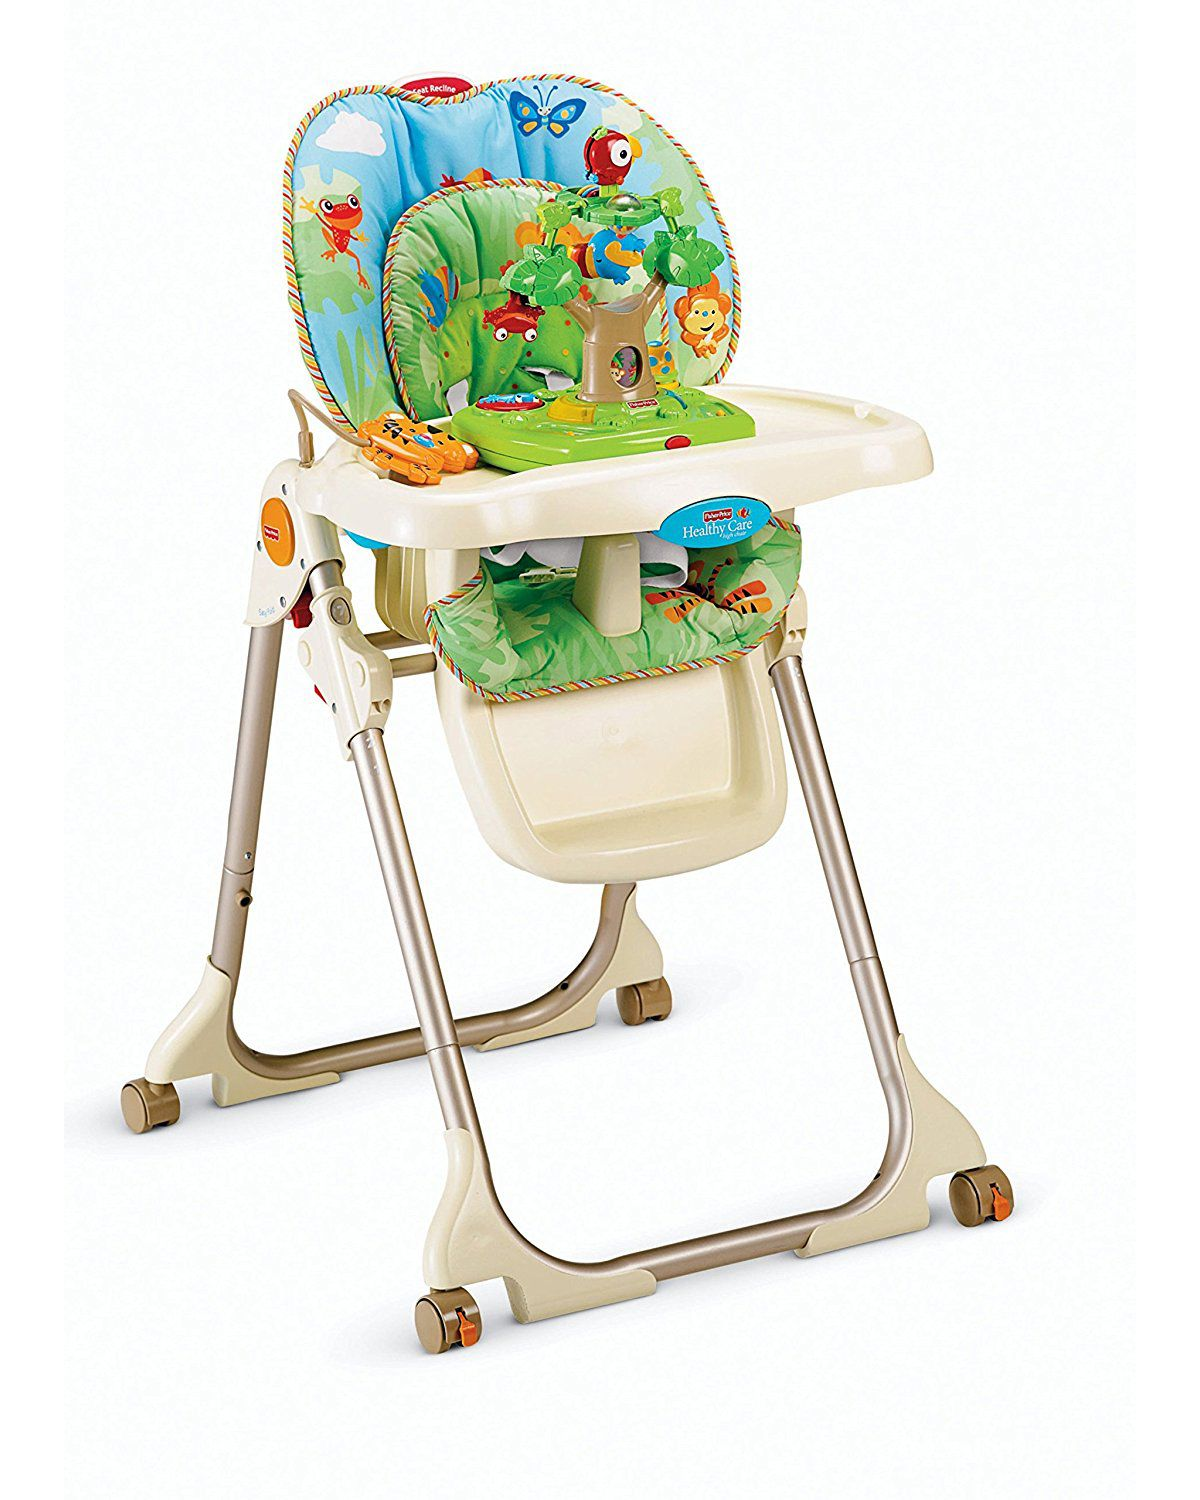 2017 05 graco blossom high chair colors - 2017 05 Graco Blossom High Chair Colors 47